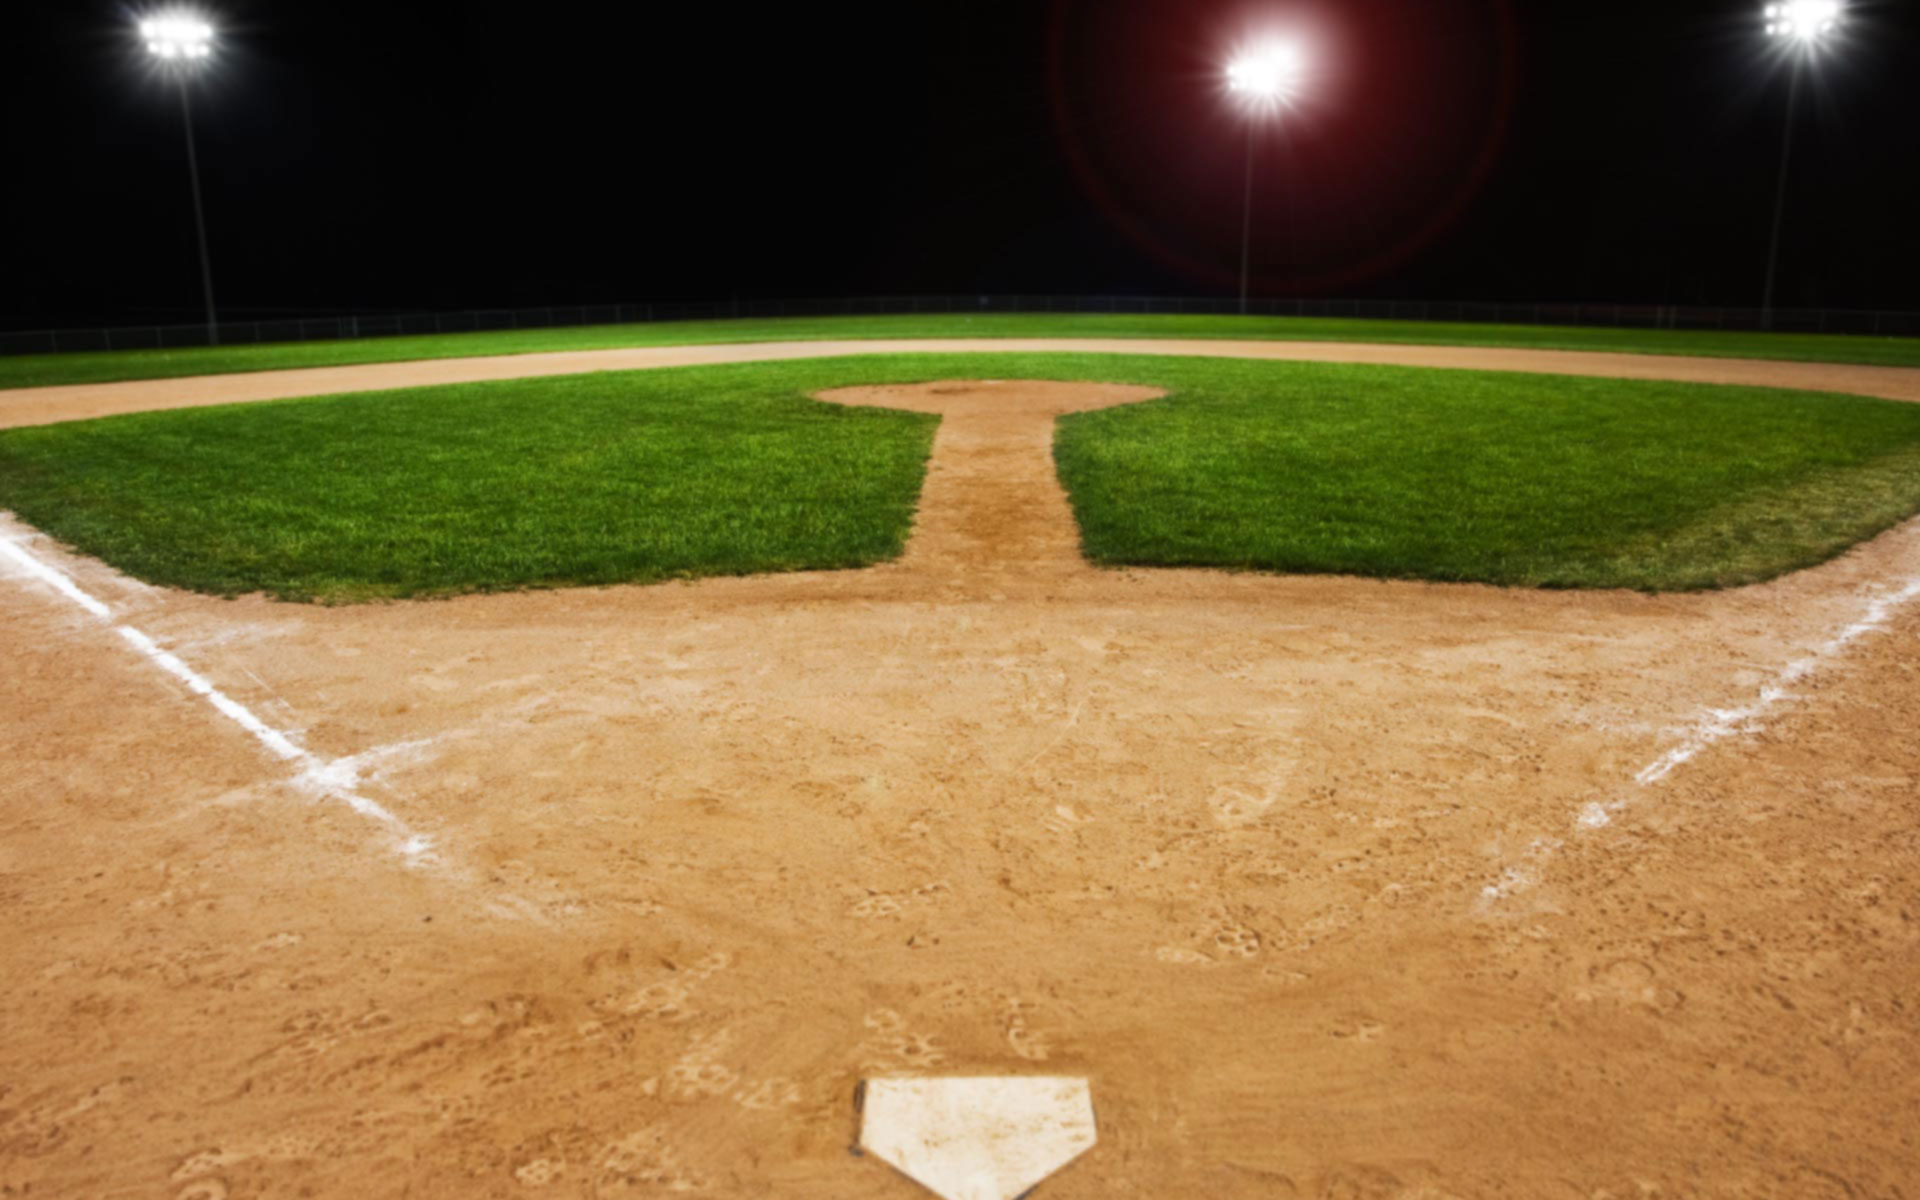 Baseball Field Wallpaper Images Wallpaper WallpaperLepi 1920x1200